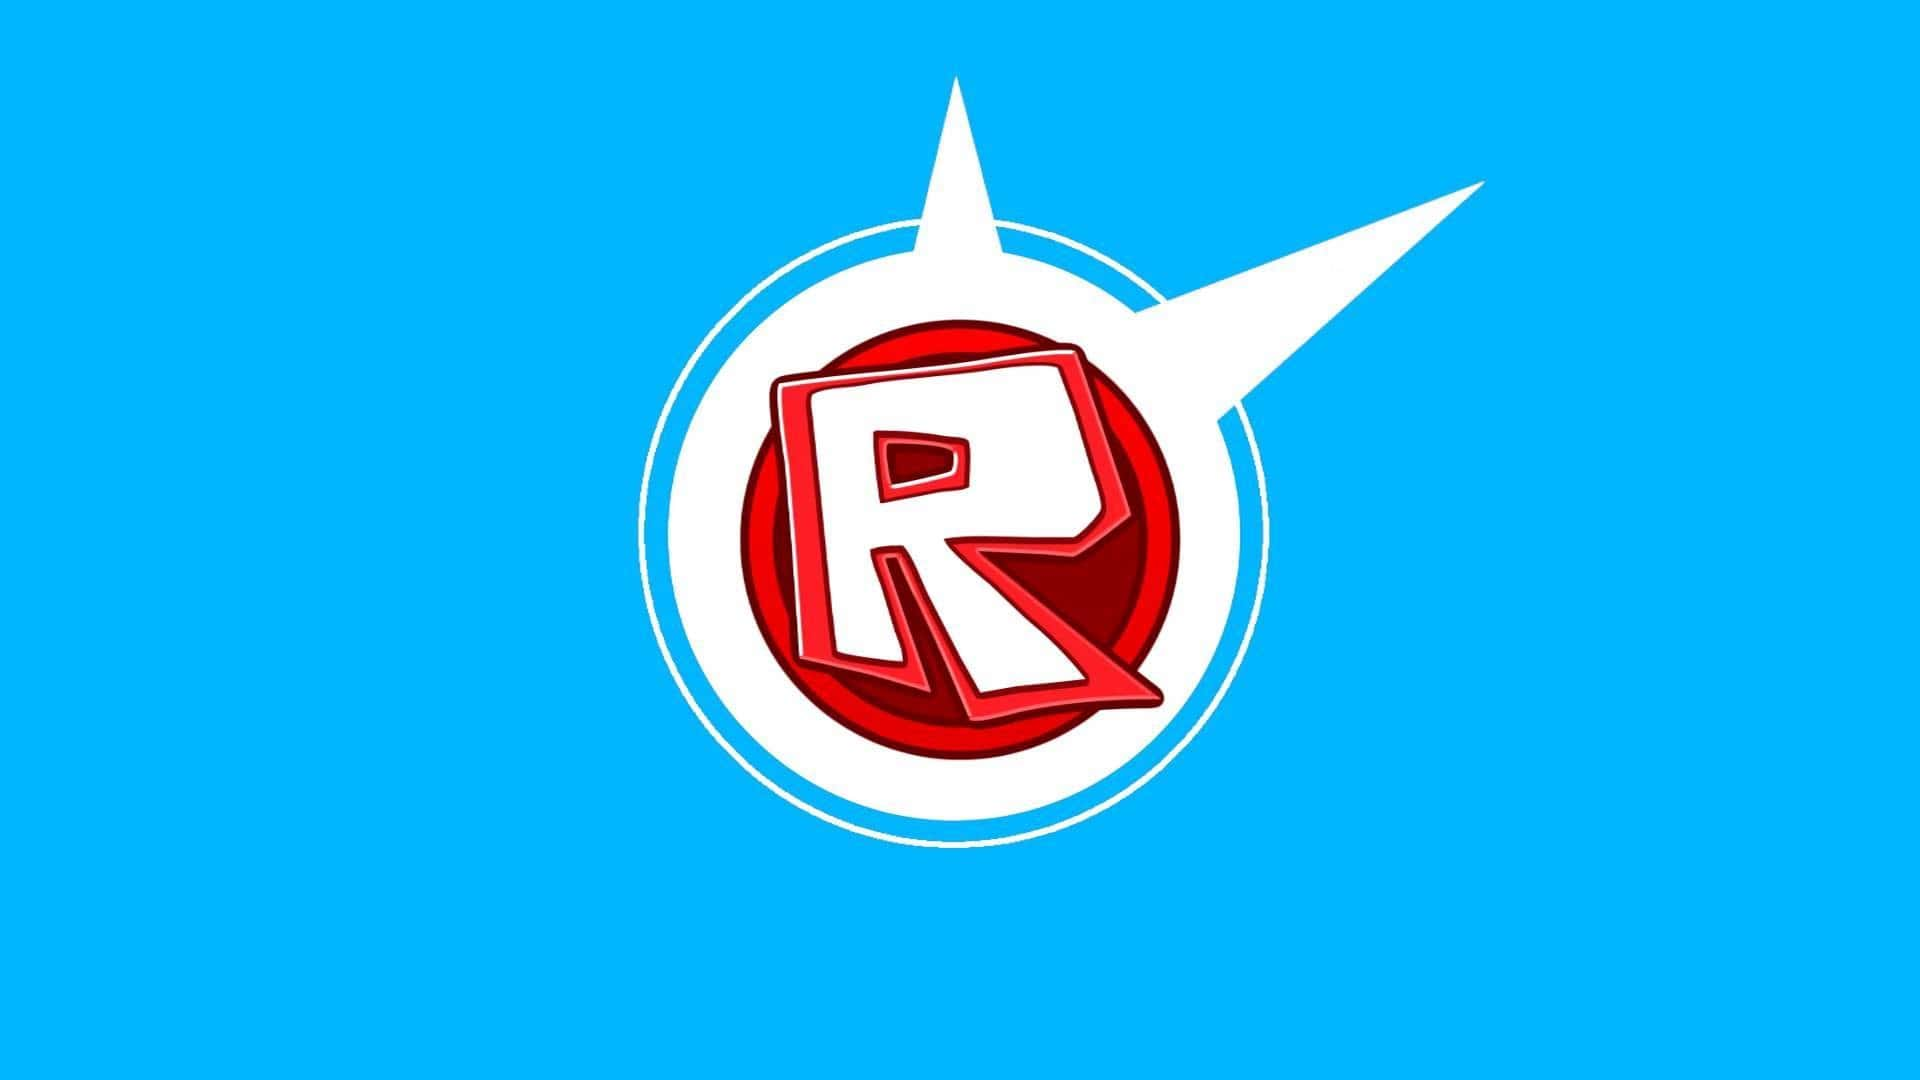 Roblox Computer Wallpaper Kolpaper Awesome Free Hd Wallpapers